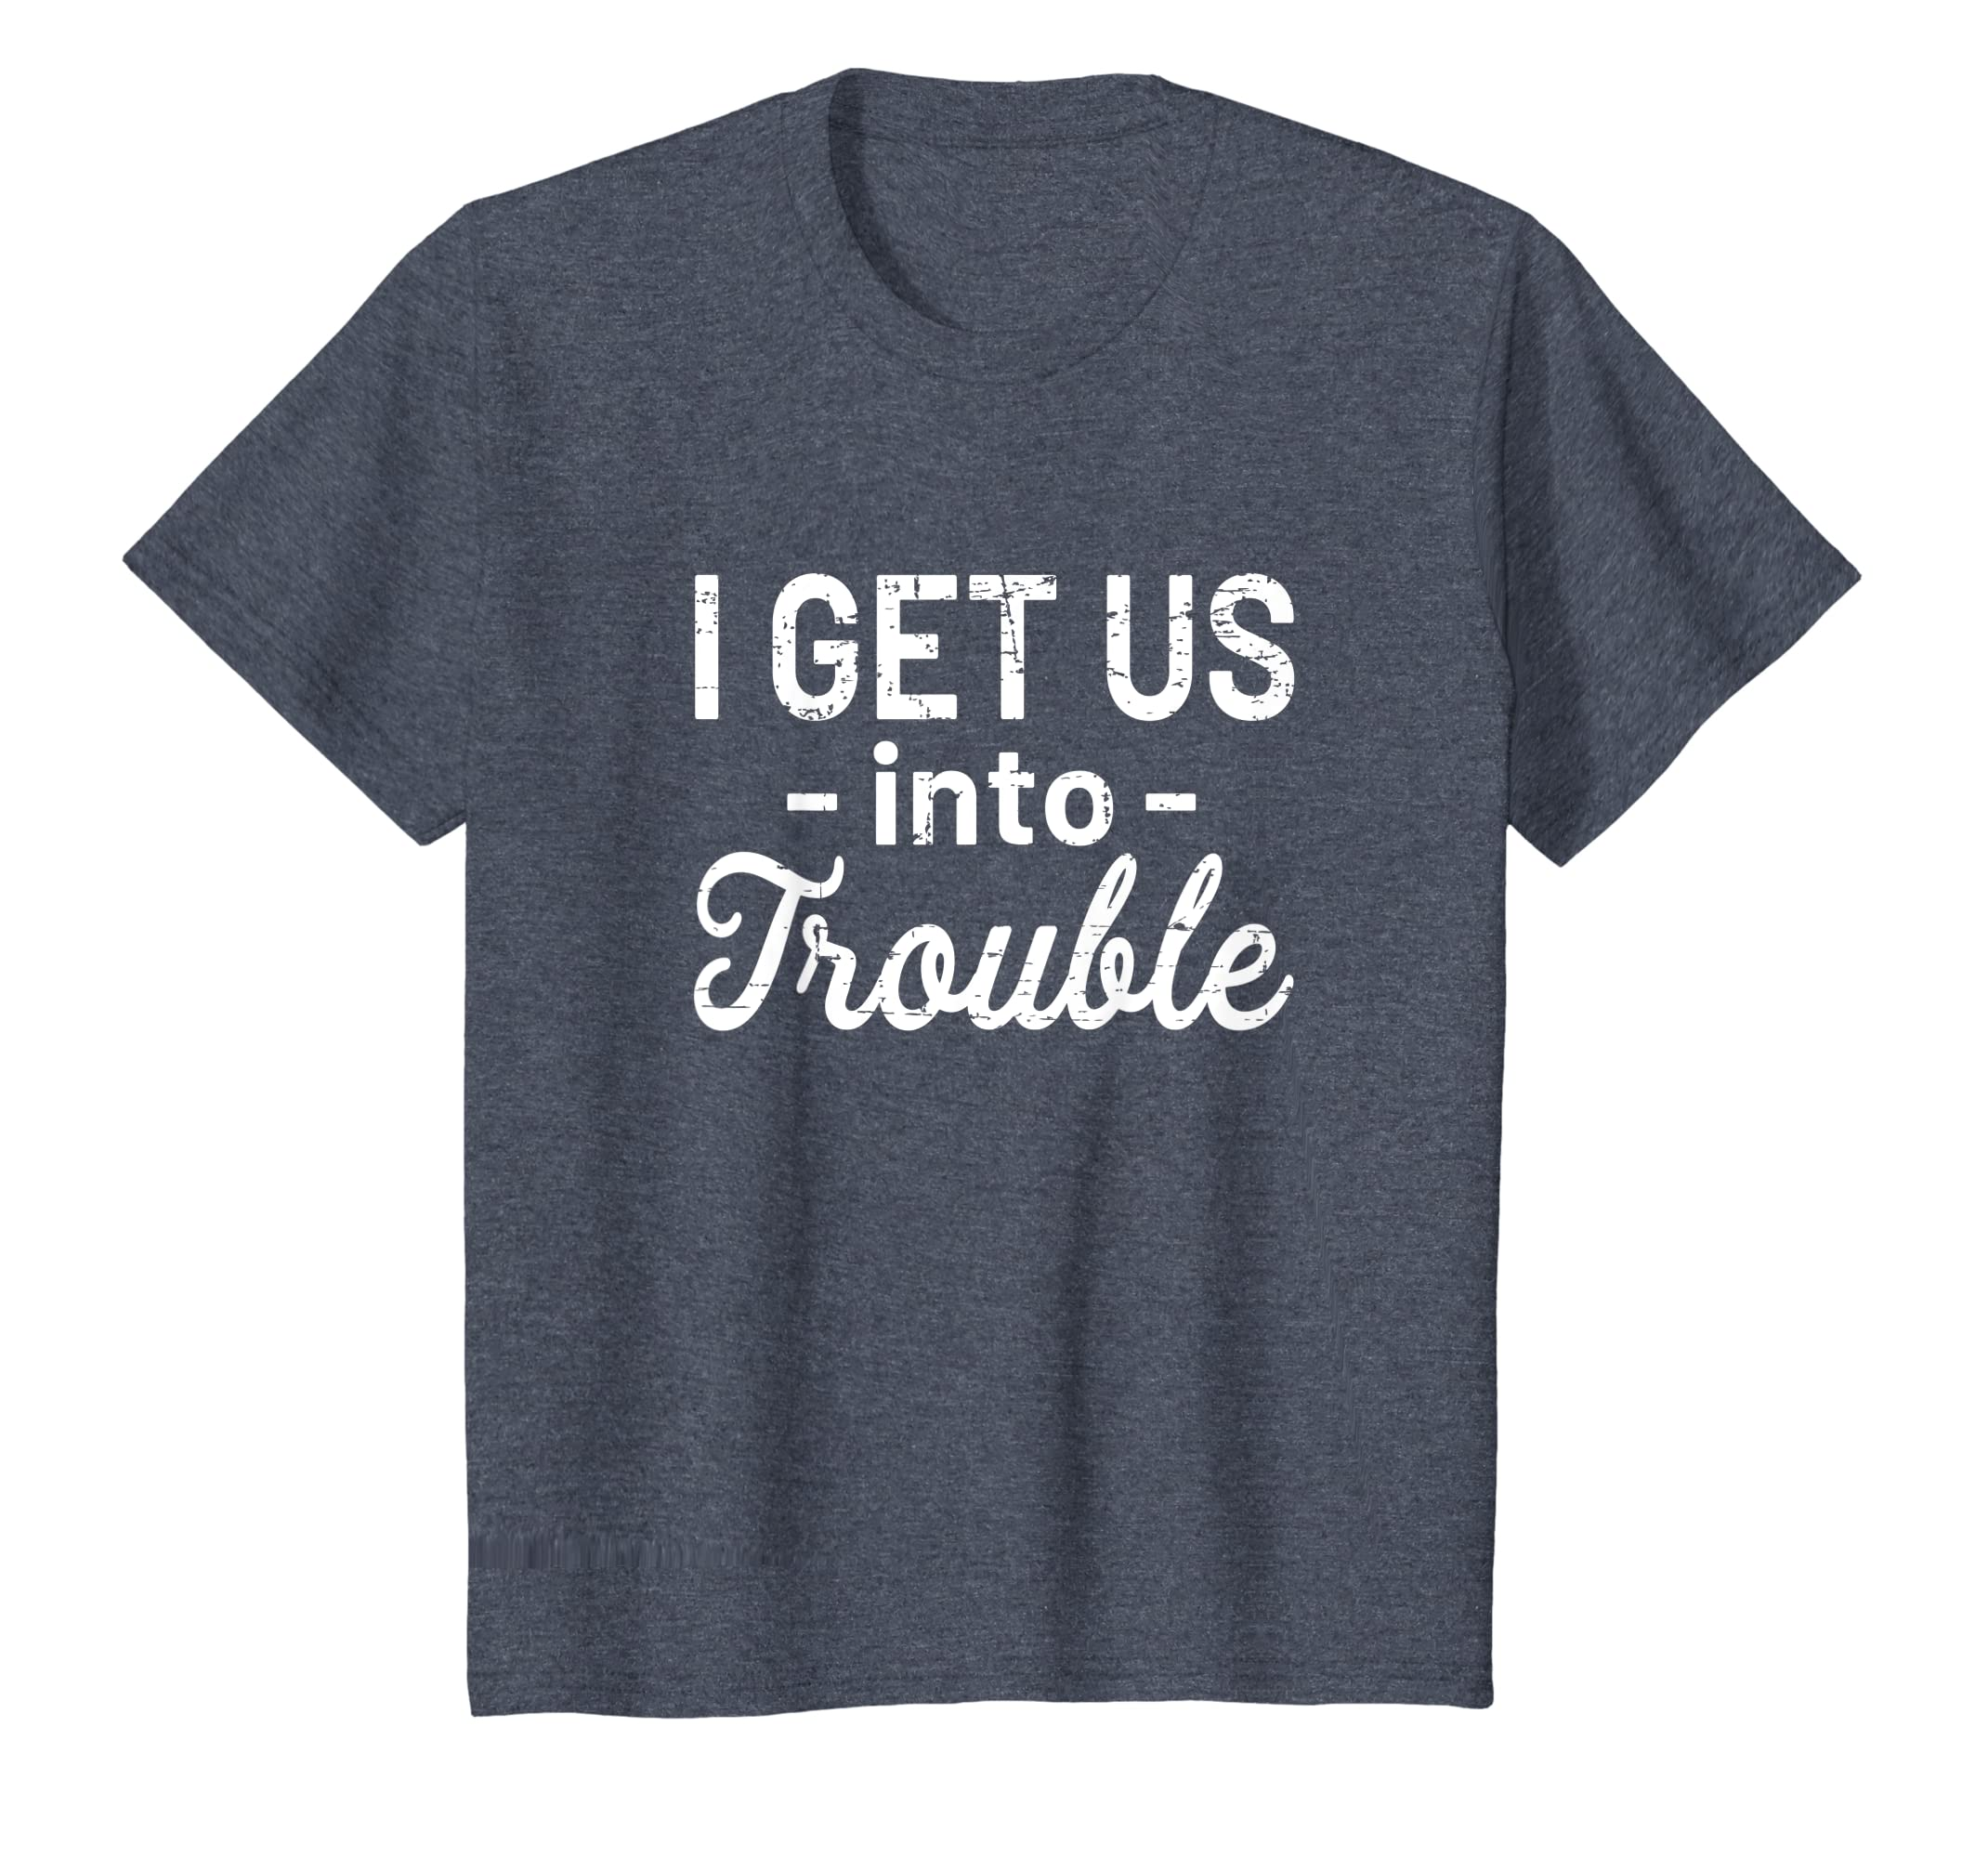 fa0da0aa02 Amazon.com: I Get Us Into Trouble T-Shirt - Funny Best Friend Gift: Clothing